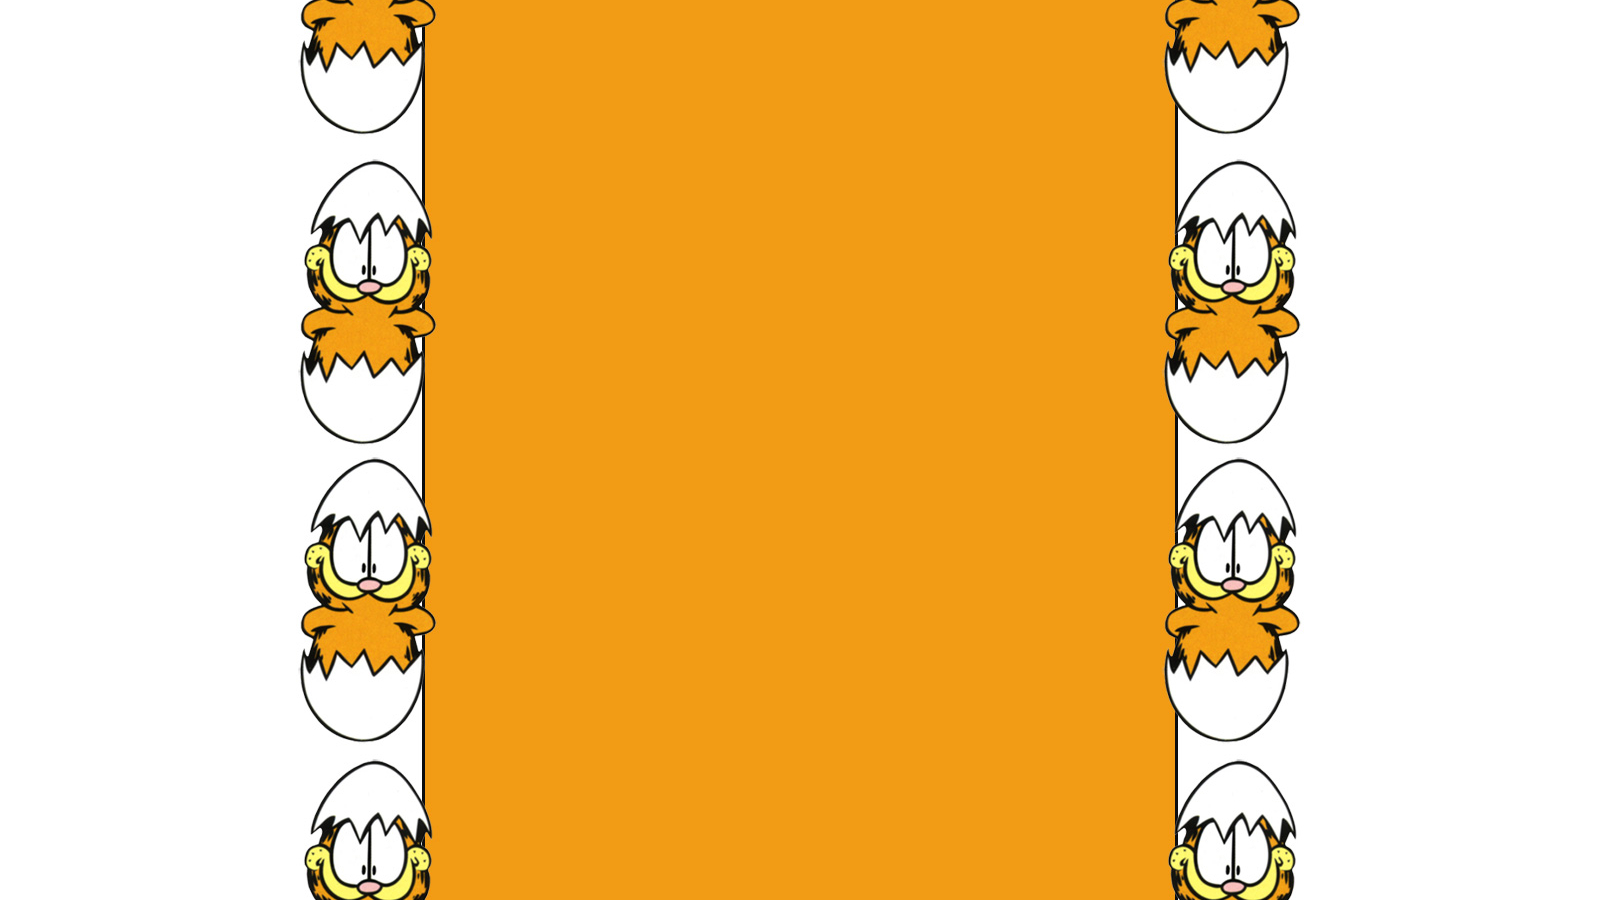 Free Download Garfield Easter Blogger Layout Template Blog Background Jelly 1600x1200 For Your Desktop Mobile Tablet Explore 48 Garfield Easter Wallpaper Free Garfield Wallpaper Garfield Wallpaper Screensavers Garfield Wallpaper